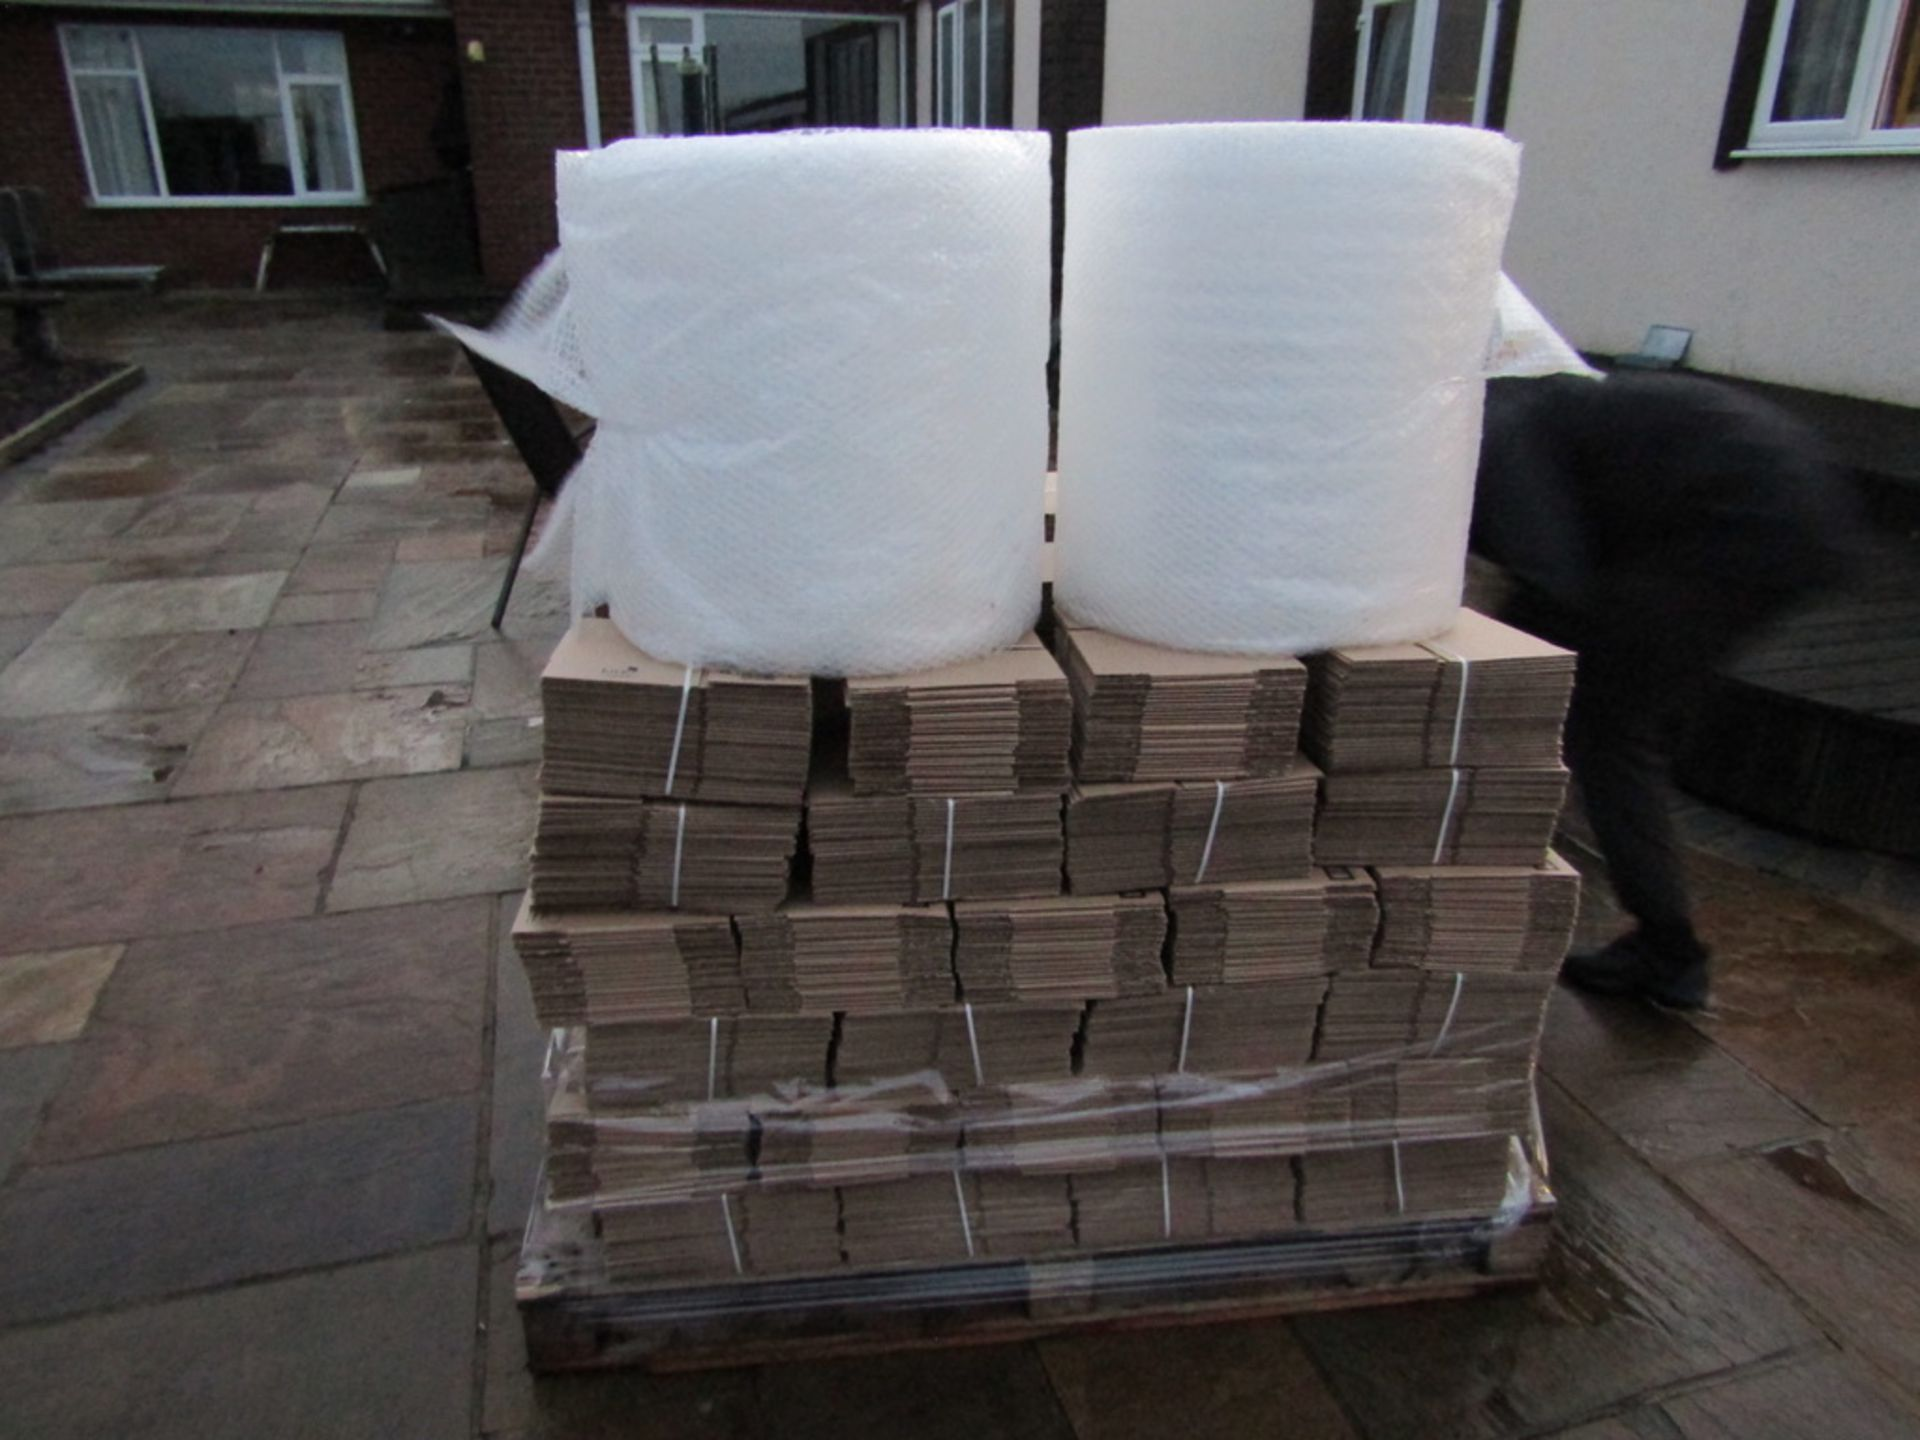 Pallet Load of Packaging Materials. RRP. £1445 - Image 2 of 2